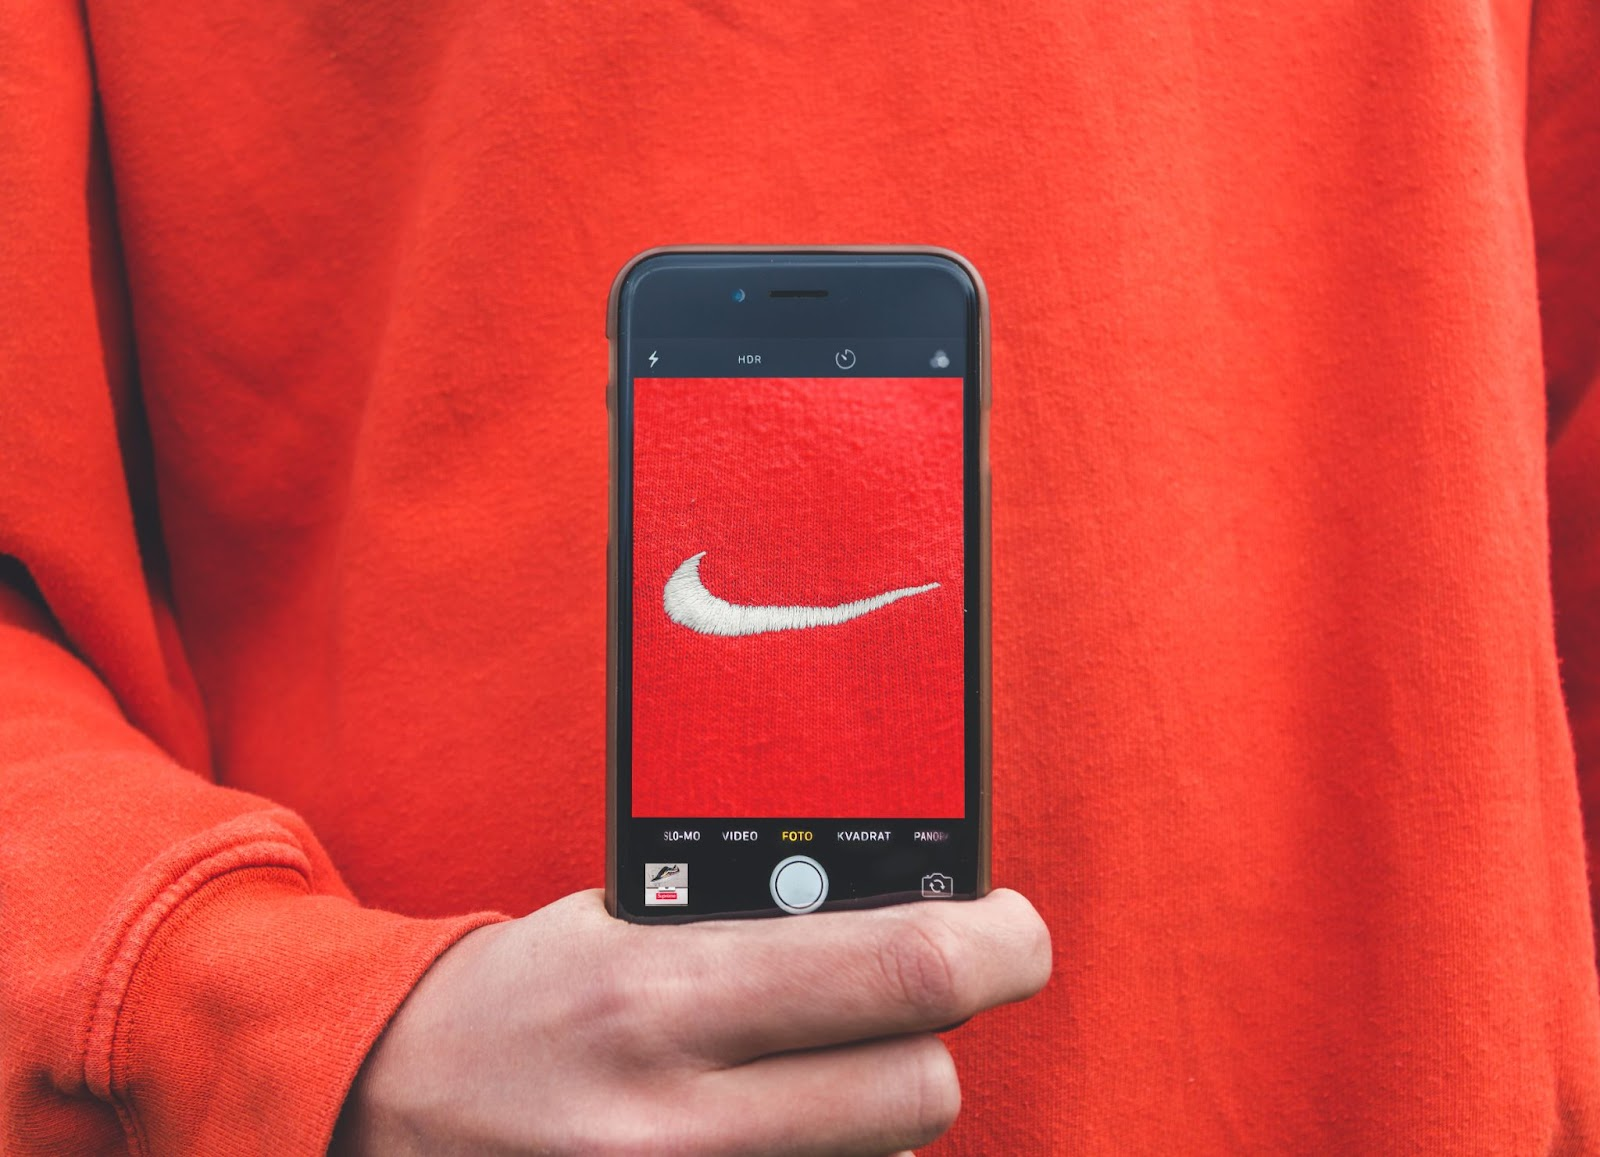 Nike swoosh logo in the center of a Iphone with the camera app open